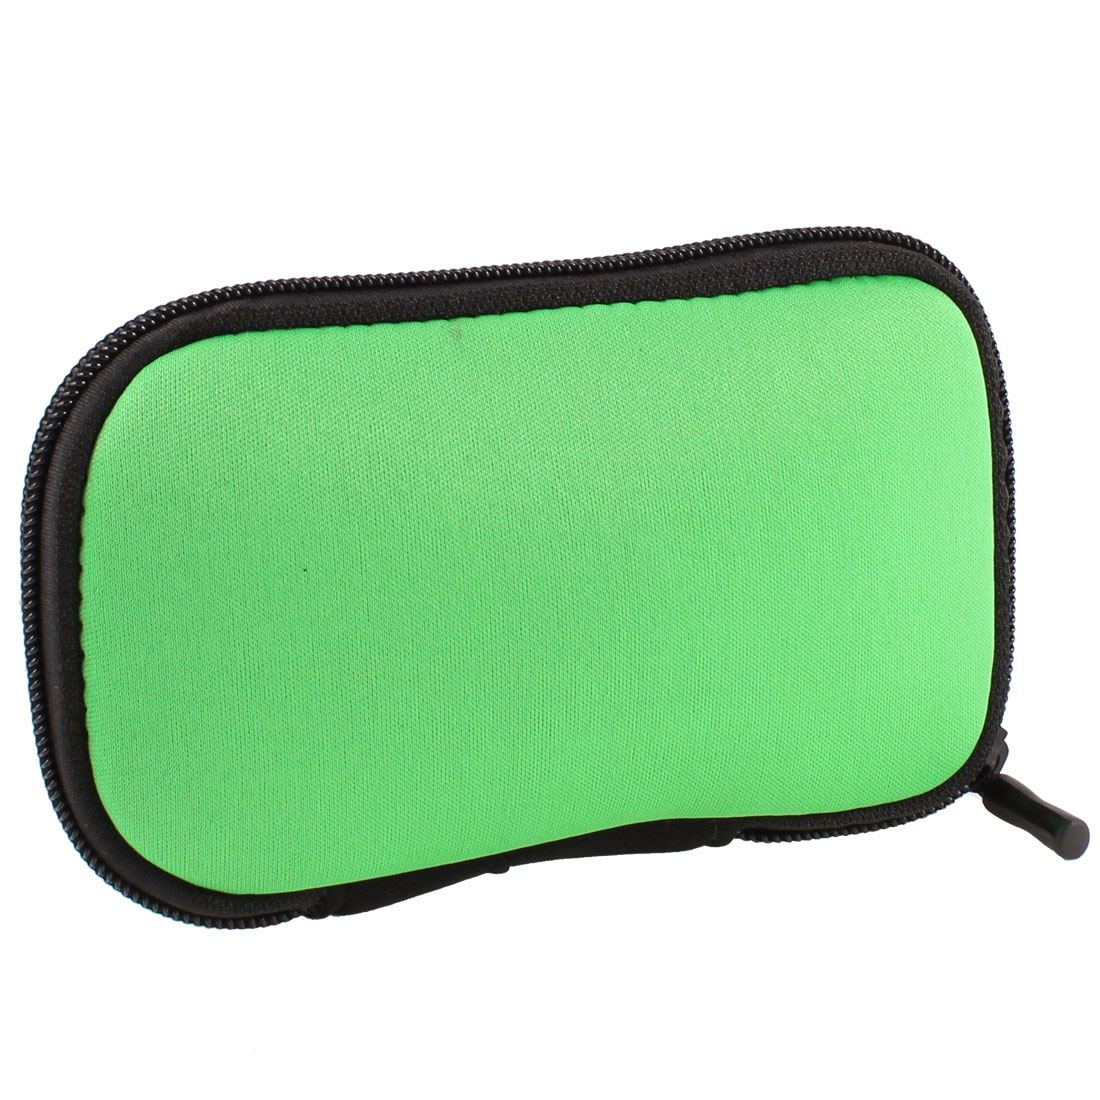 "Zip-up Neoprene Sleeve Bag Pouch Carry Case Green for 2.5"" HDD Hard Drive Disk"